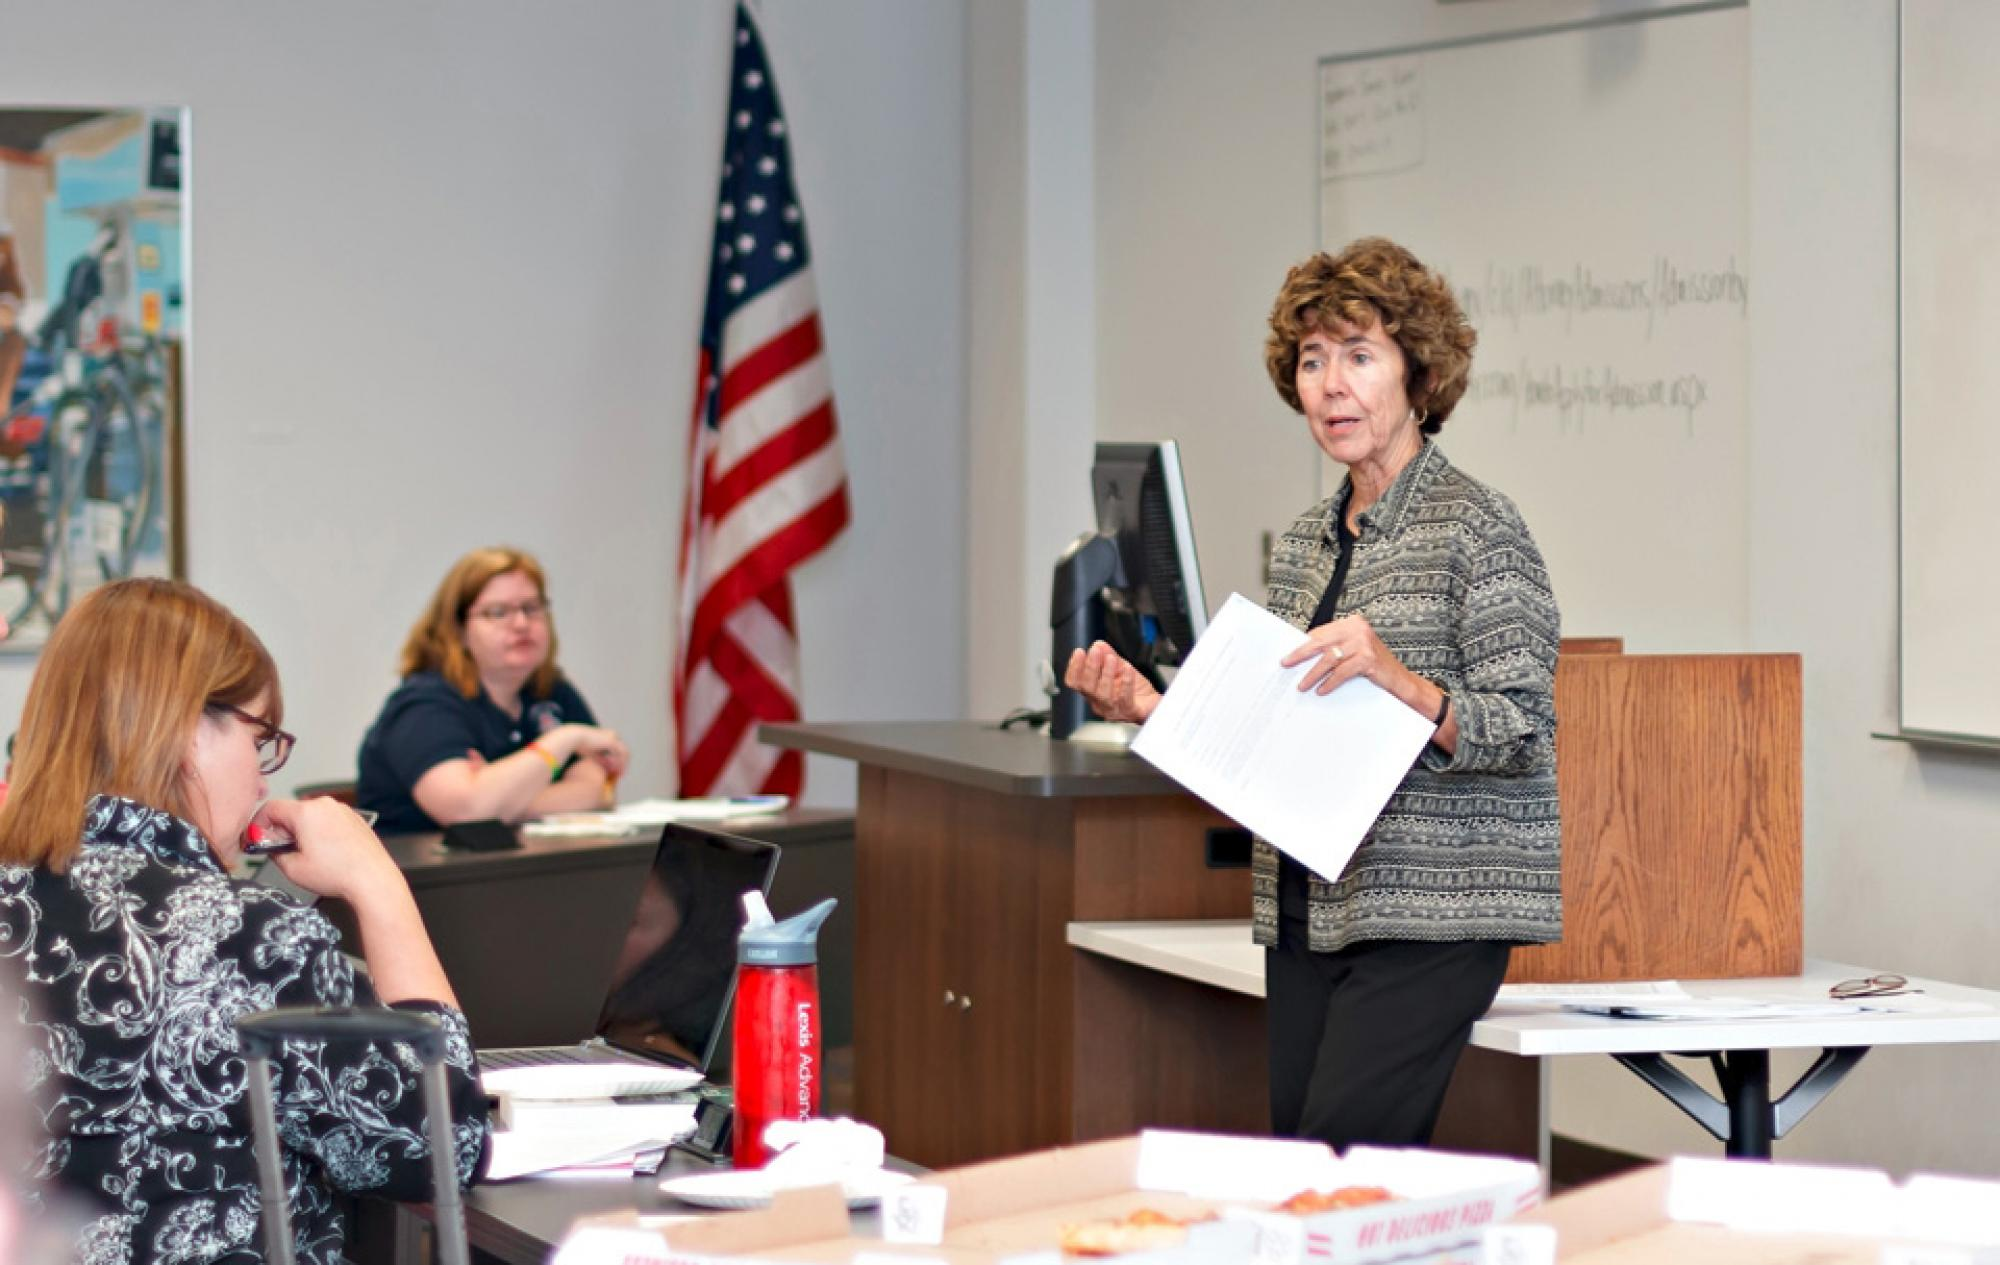 Barbara Atwood, professor of law emerita, helped UA law students prepare an amicus brief for the Arizona Supreme Court.